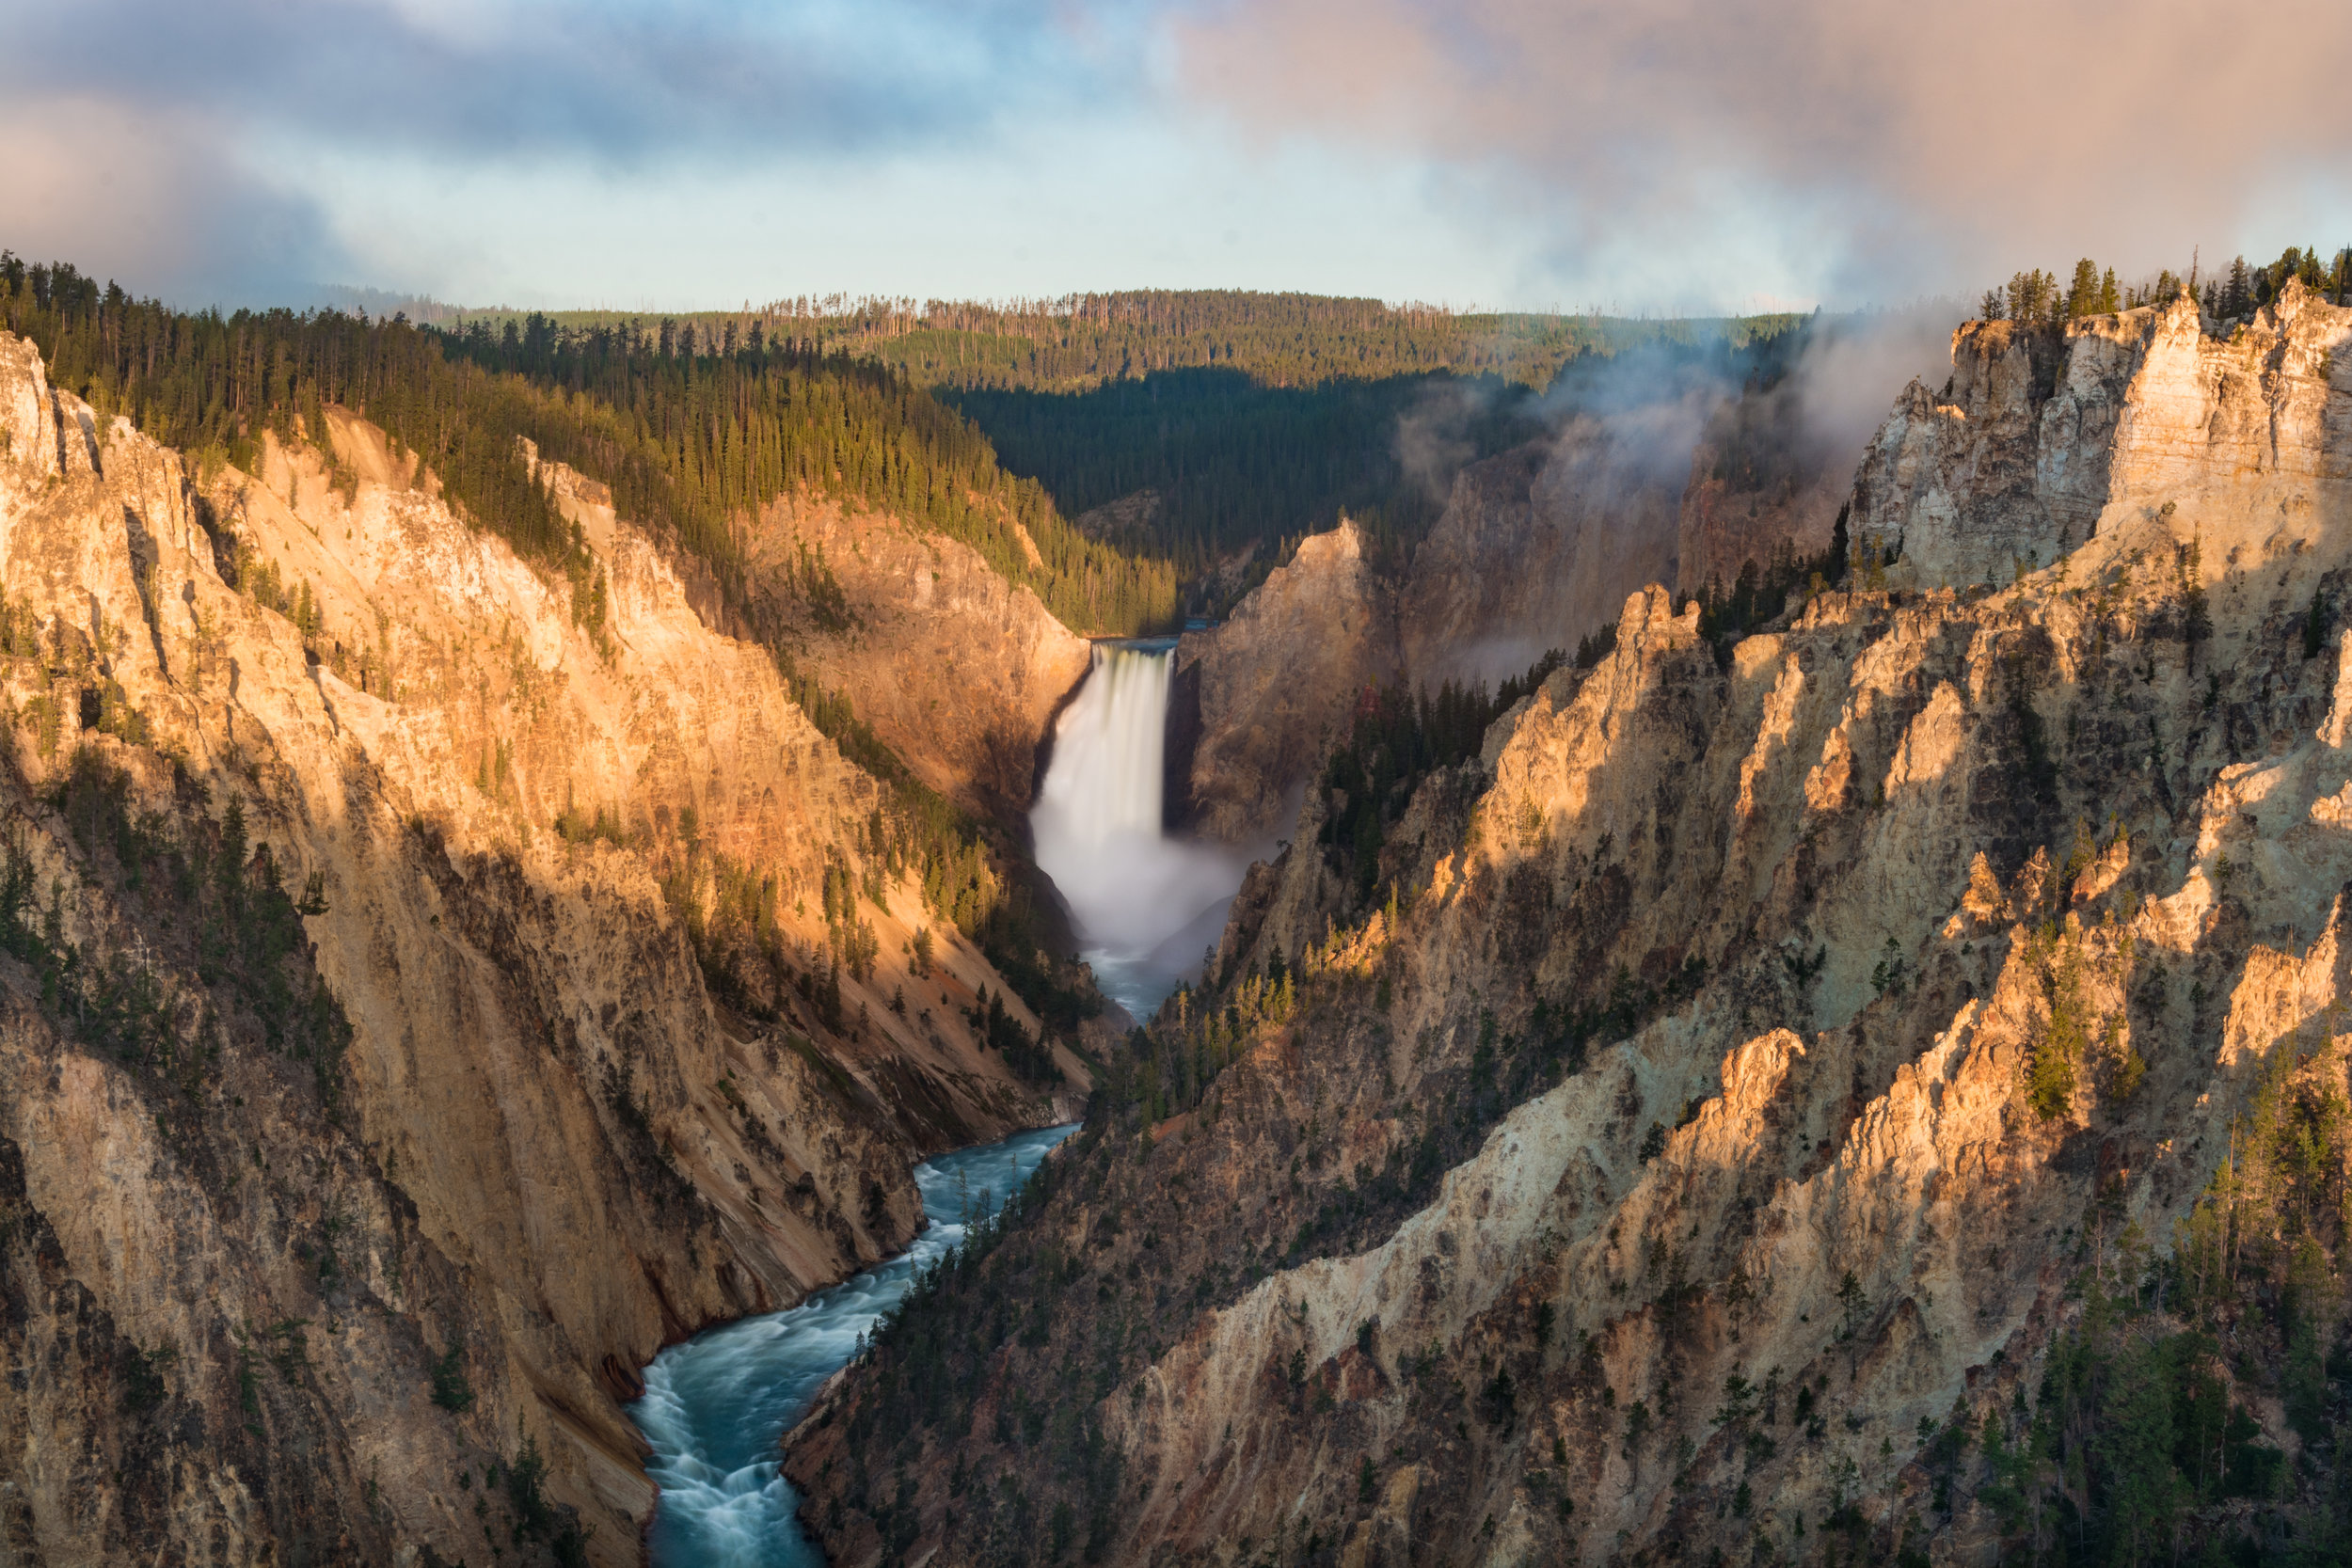 The iconic Yellowstone Falls!